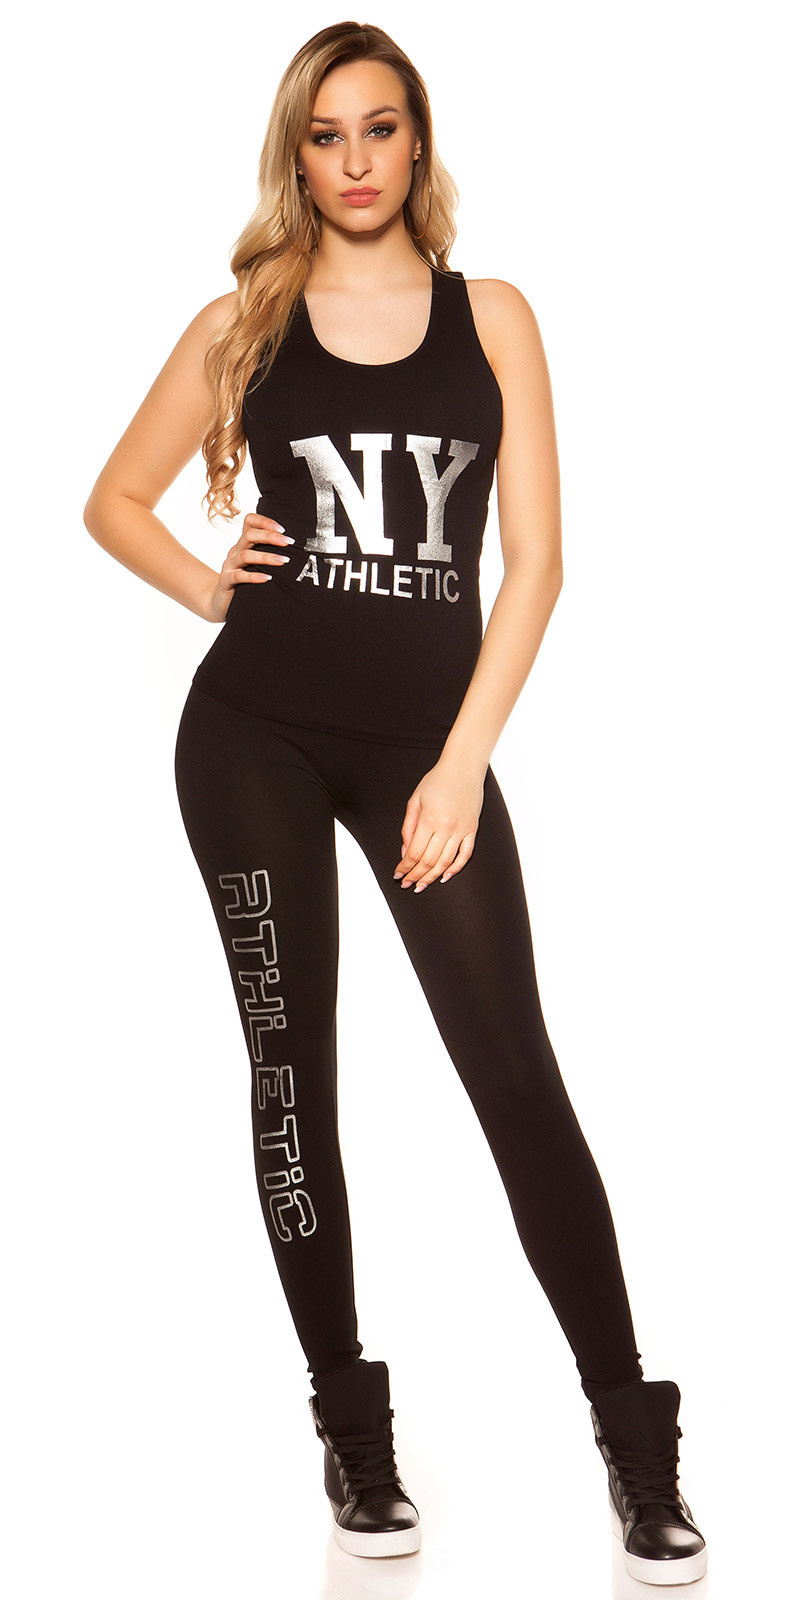 Trendy Workout Outfit NY ATHLETIC Silver